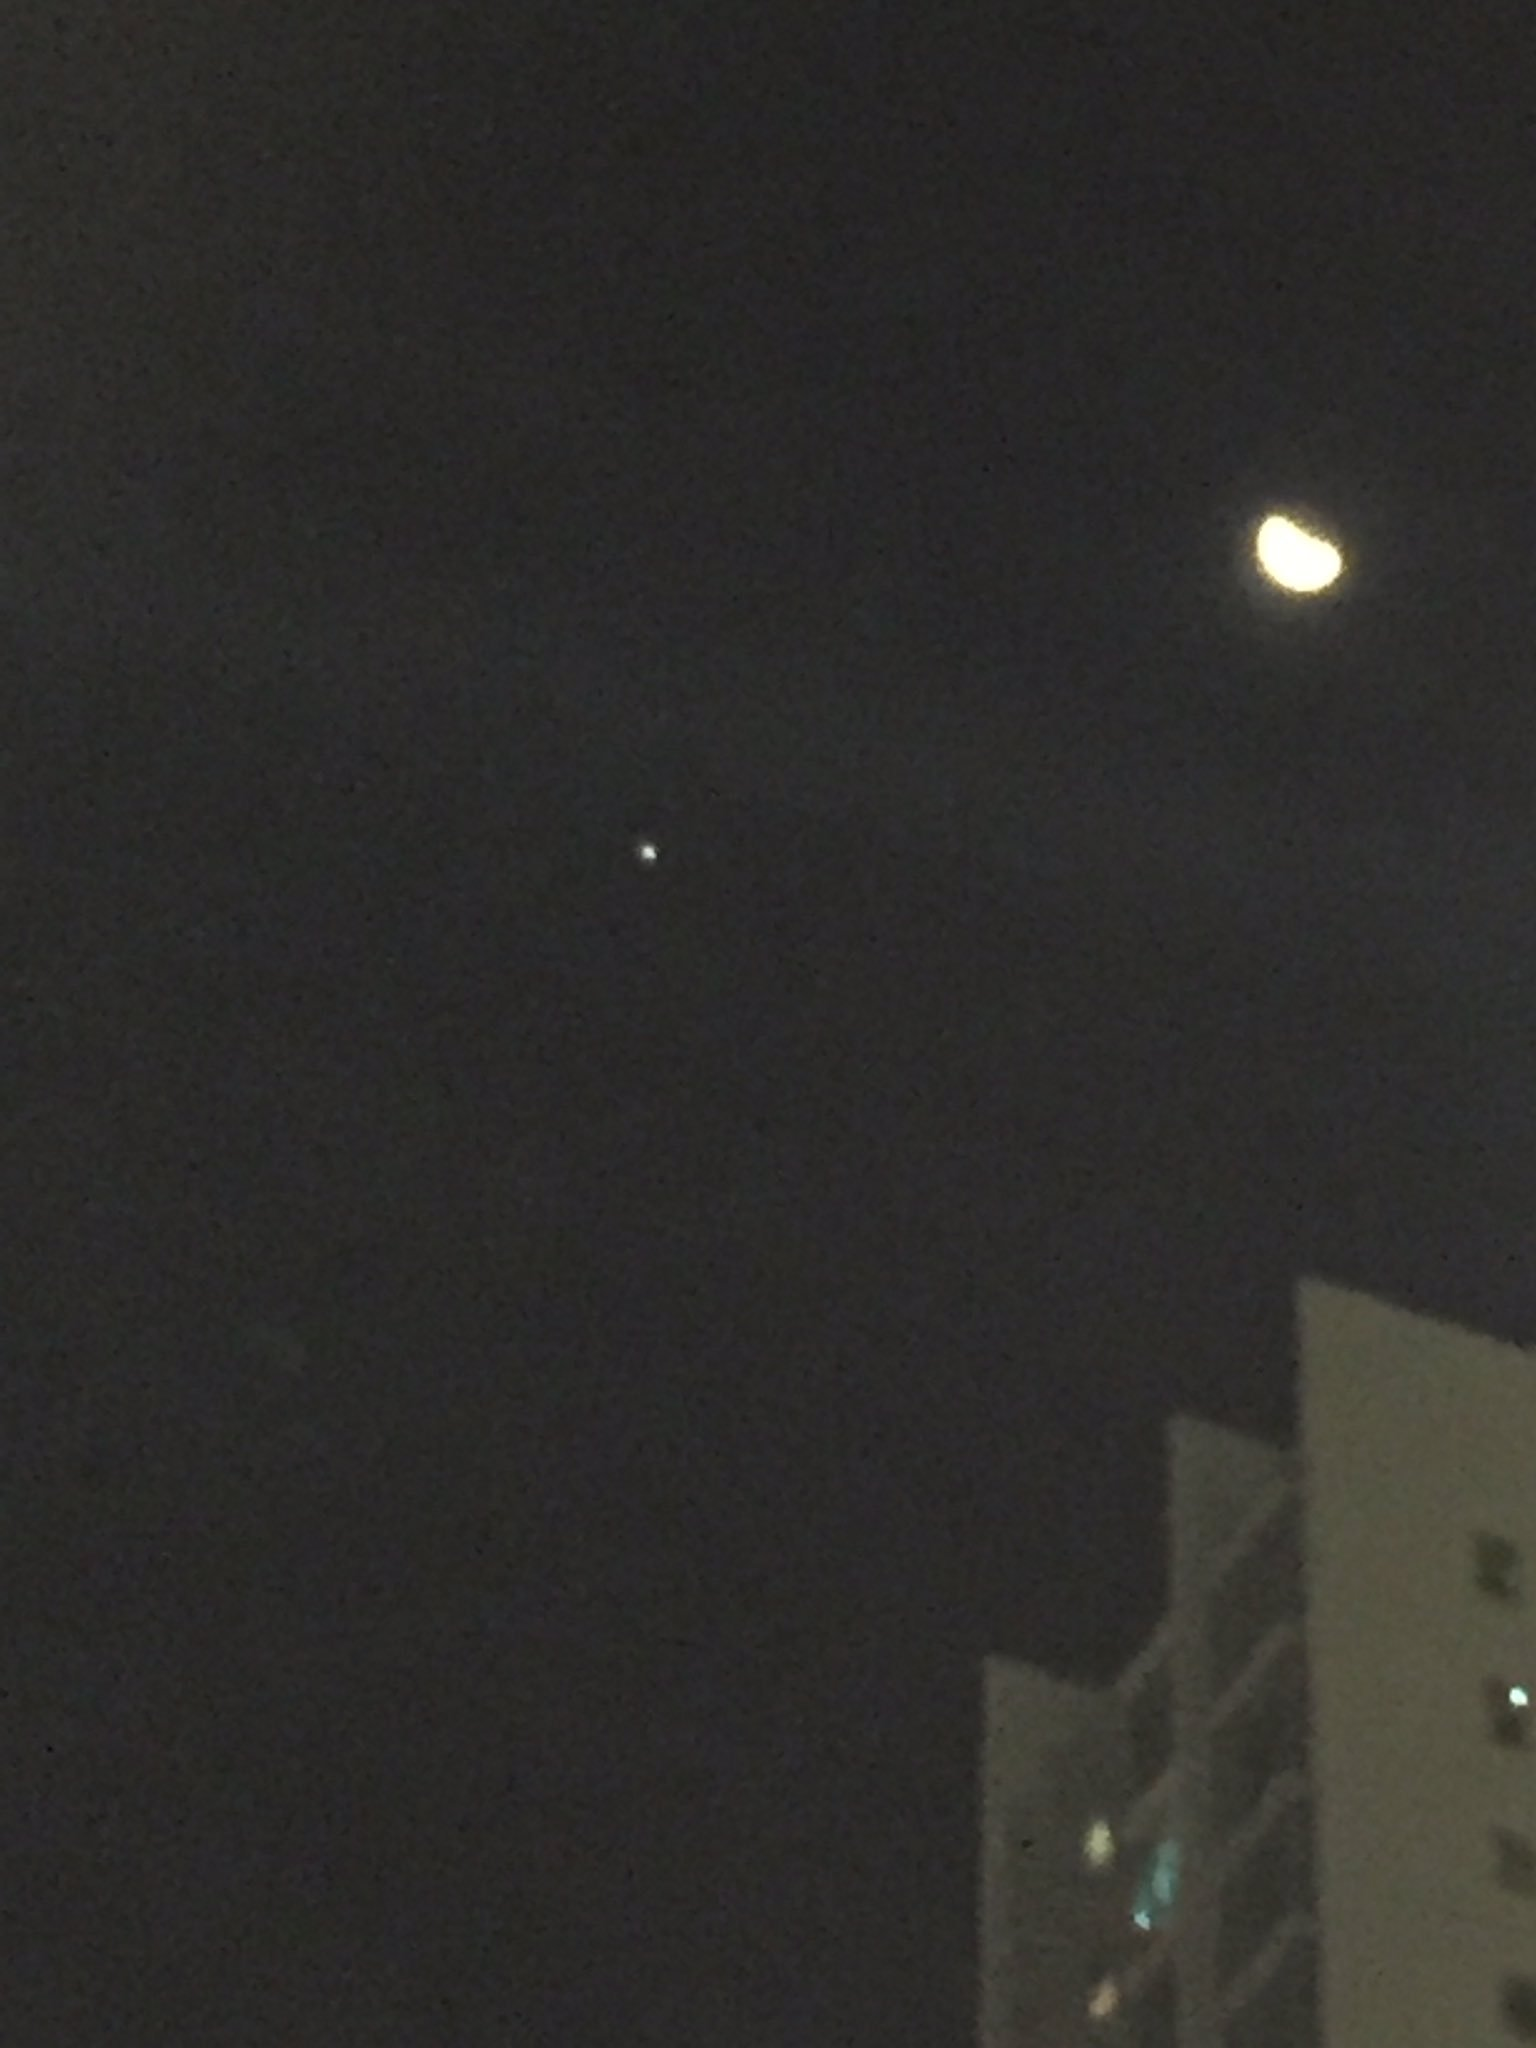 Hey tweeps the Moon and Jupiter are hanging out in the sky again -- take a look! https://t.co/xEhv3vnZvR